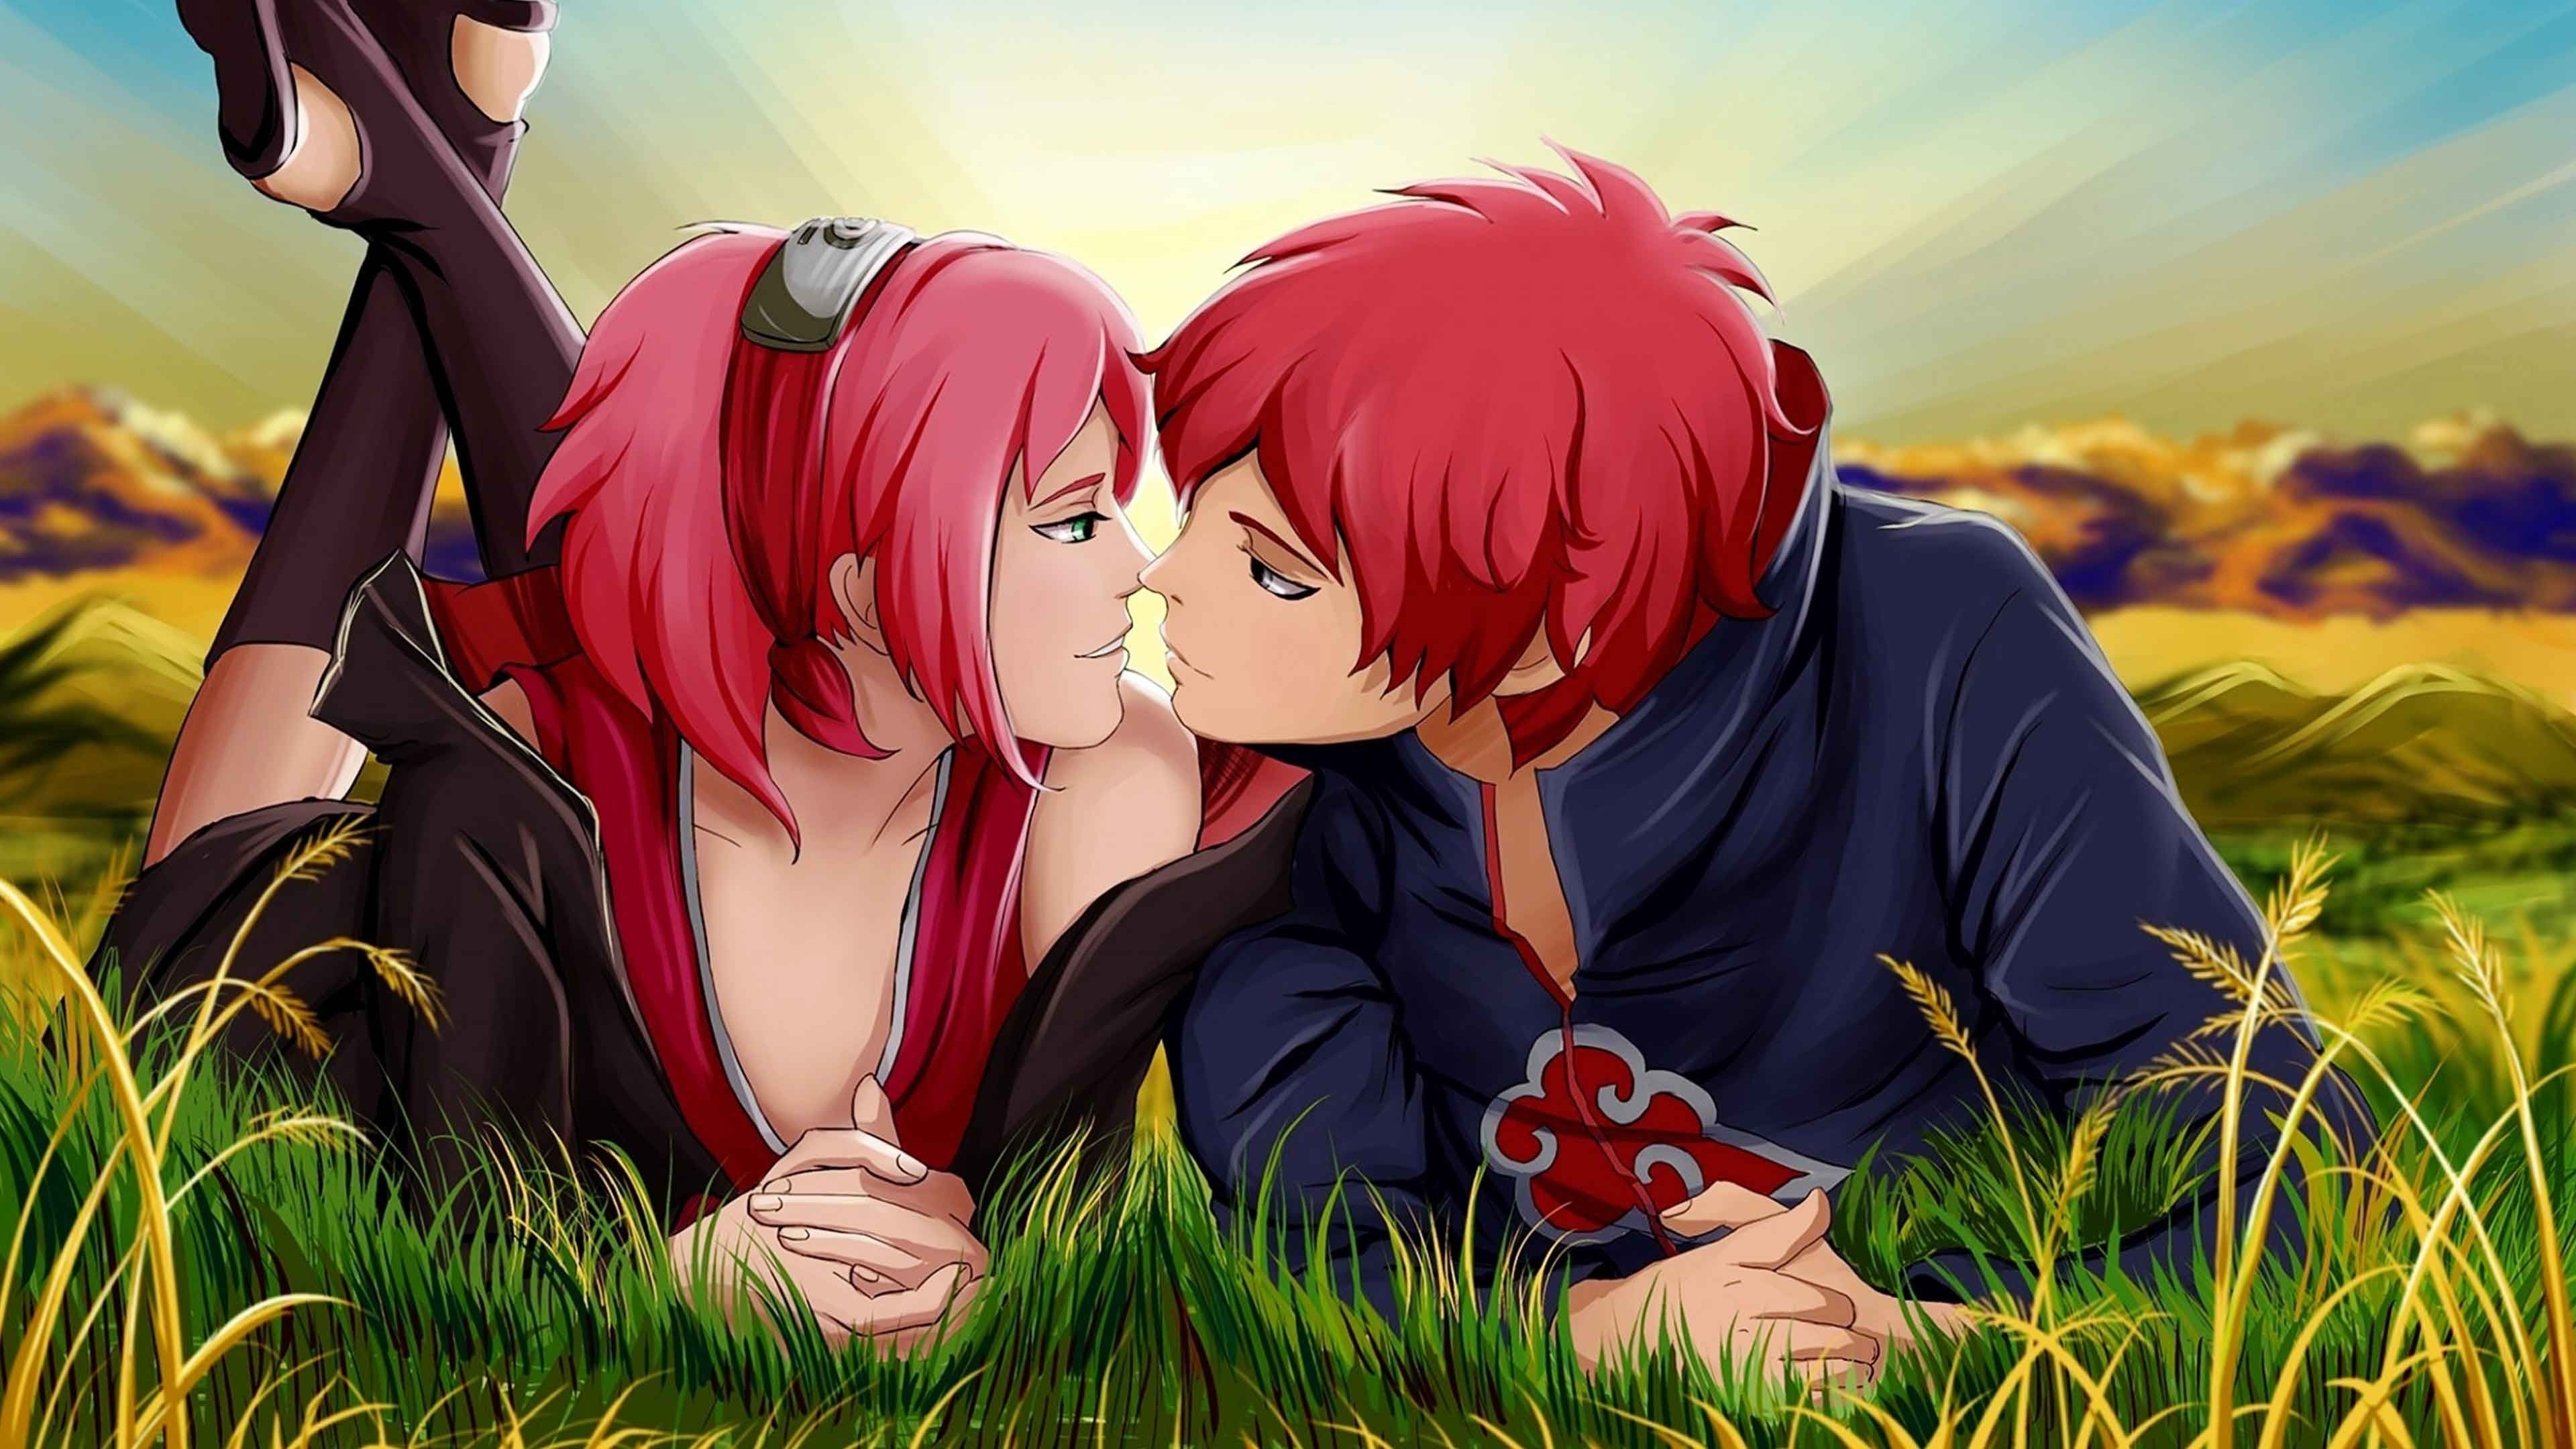 Love Cartoon Wallpapers Top Free Love Cartoon Backgrounds